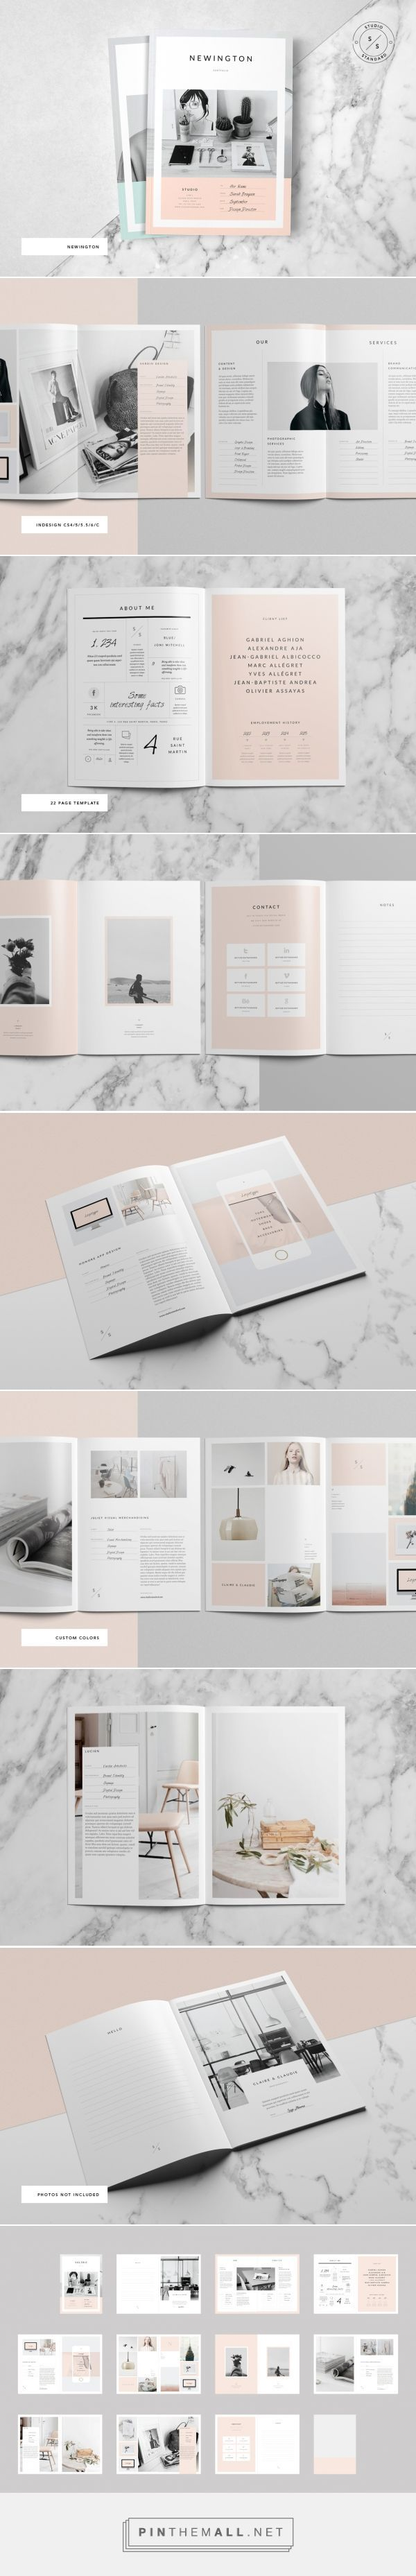 ideas about printed portfolio portfolio newington portfolio on behance created via pinthemall net